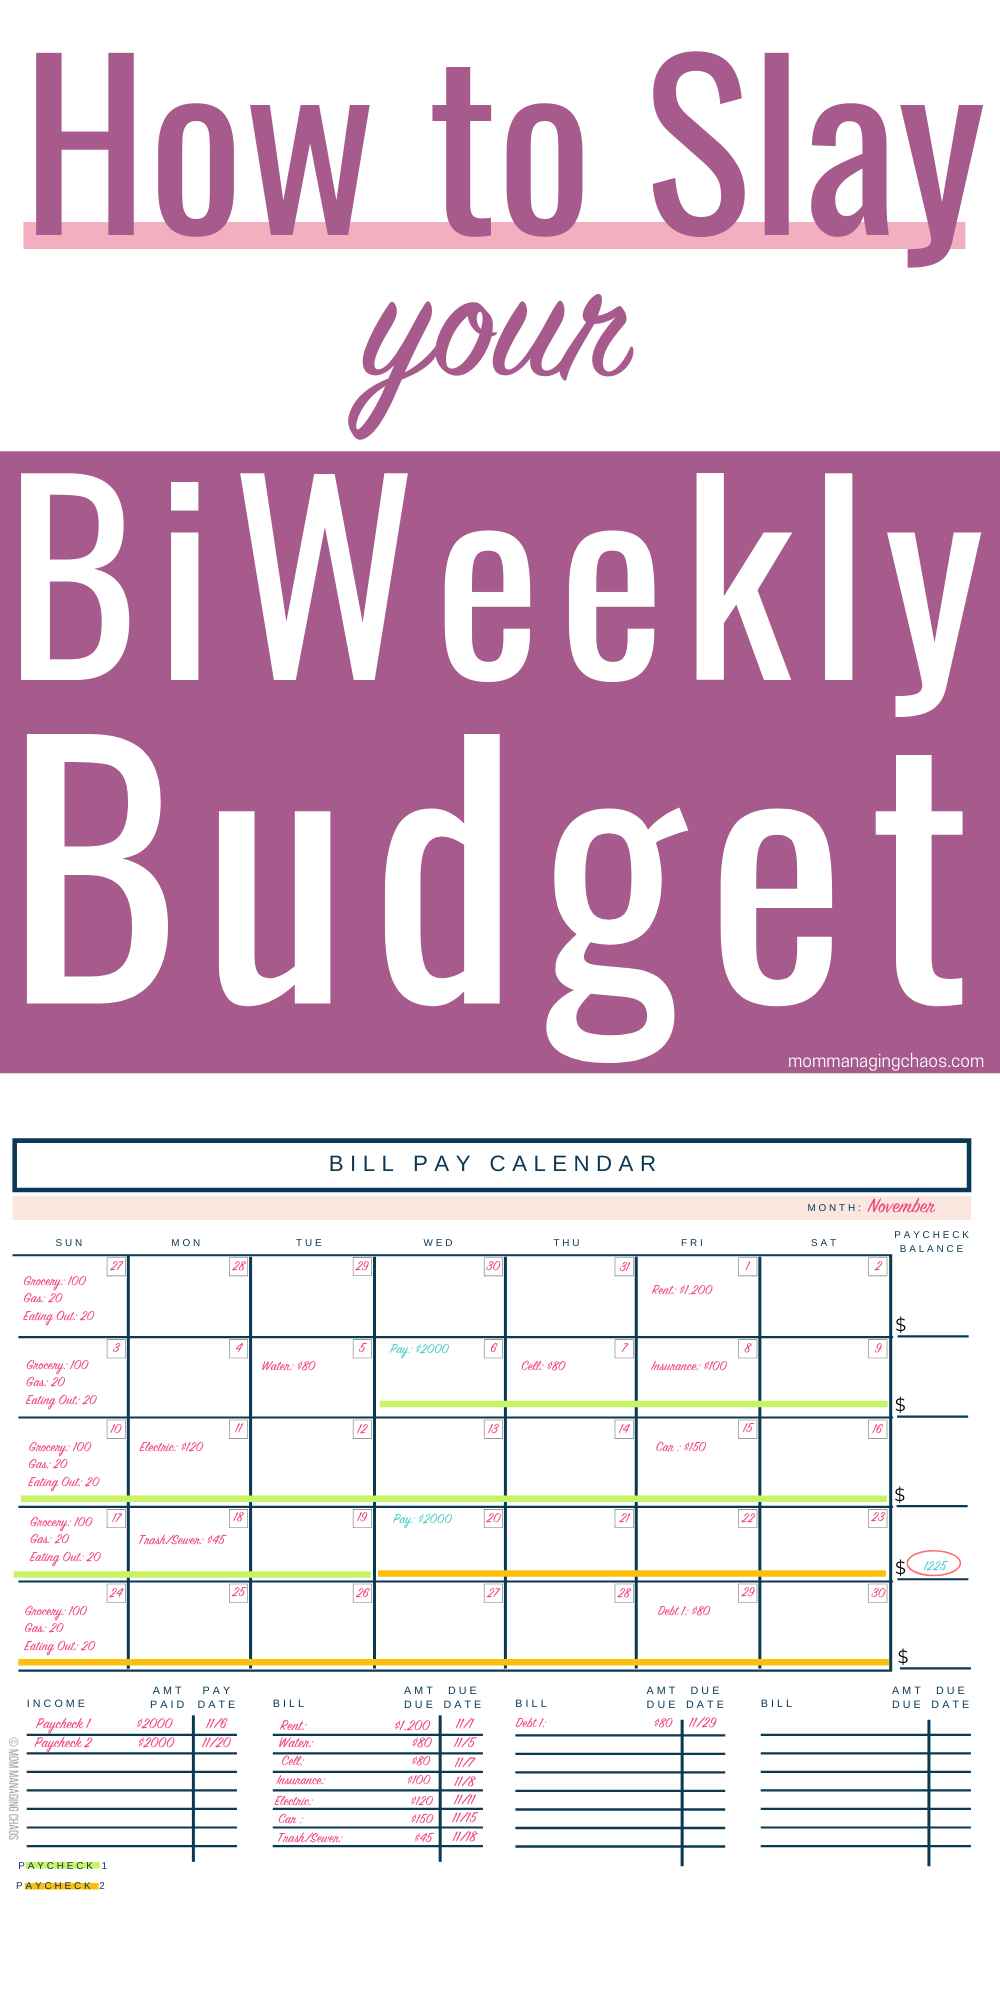 Are you struggling with how to create a monthly budget when you get paid biweekly paycheck? Learn how to organize and pay bills, manage your biweekly budget and more!  Managing Your Money | Budget | Budgeting Money | Money Tips | Biweekly Savings  #mommanagingchaos #budget #money #moneytips